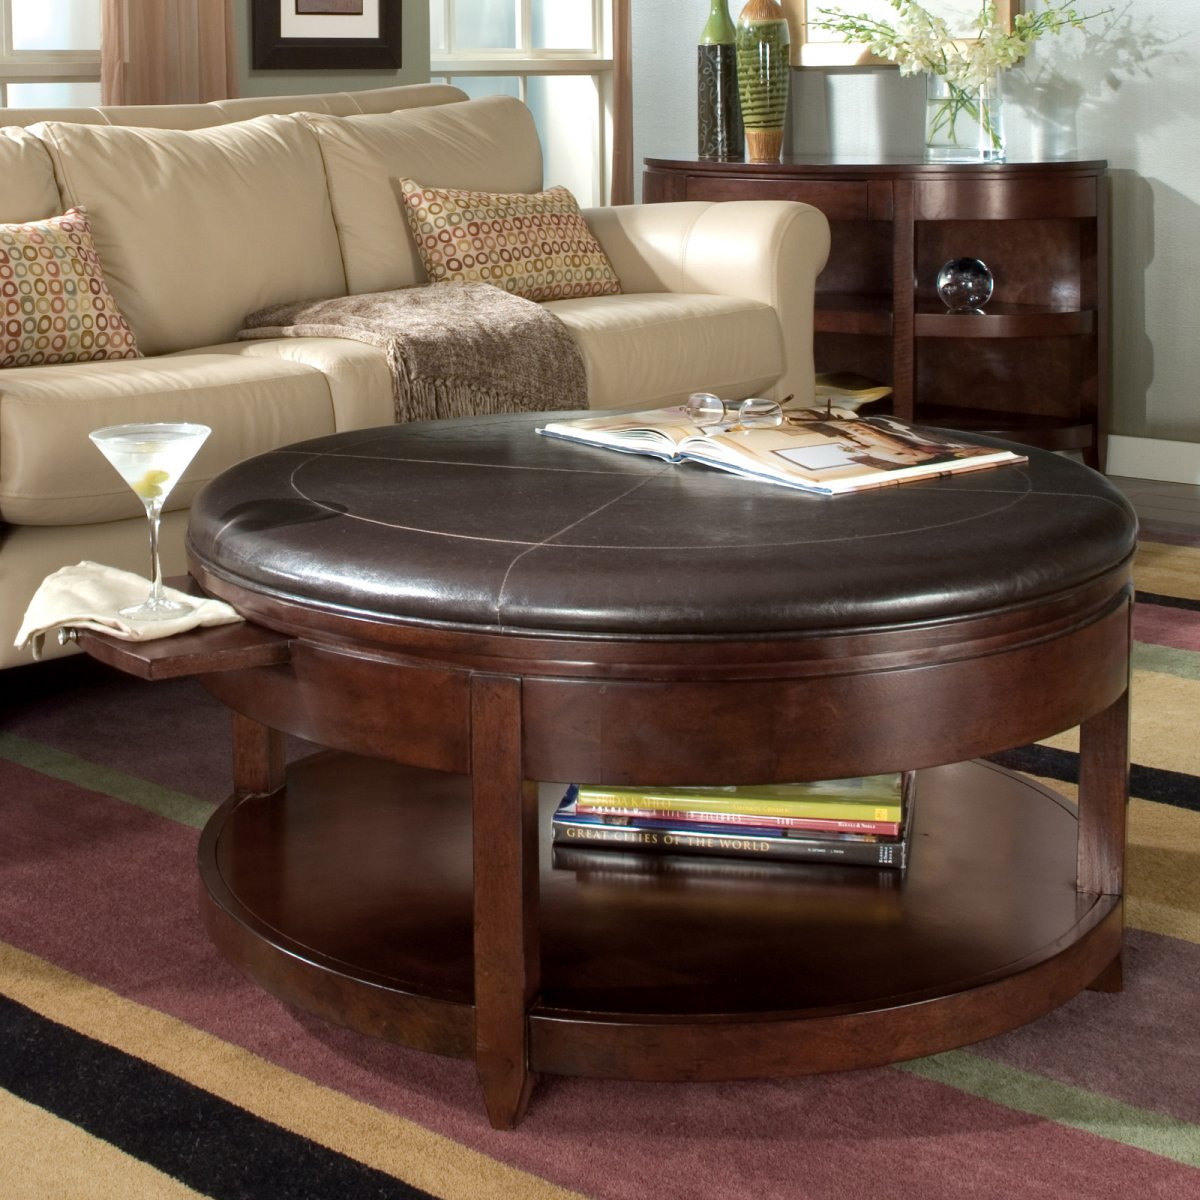 Ottoman Coffee Table With Sliding Wood Top: 10 Inspirations Of Large Round Leather Ottomans Coffee